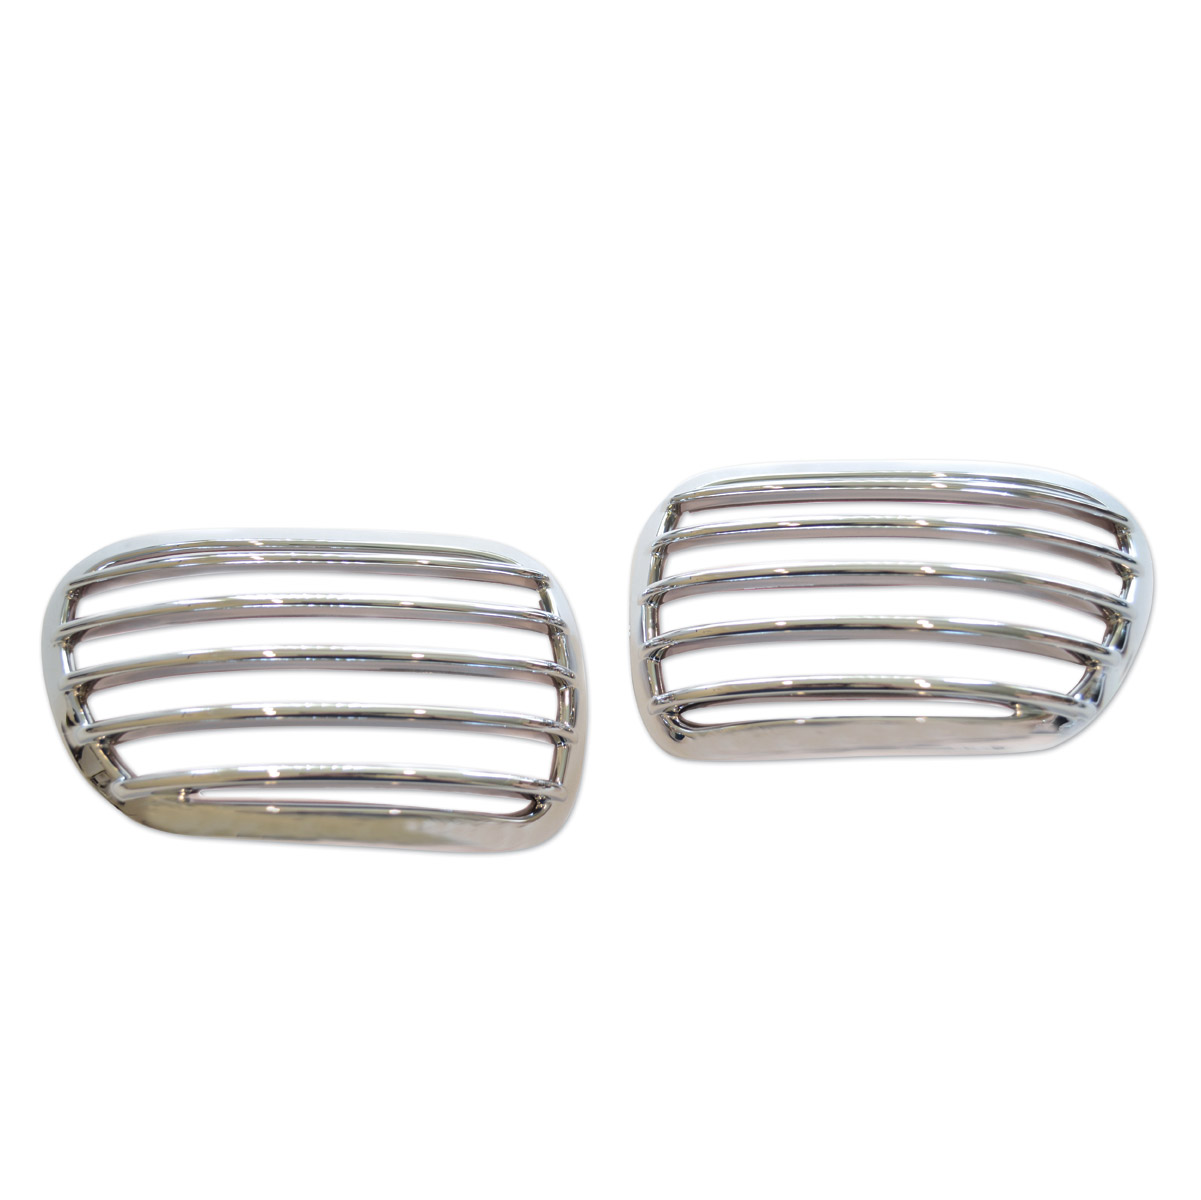 SoCalMotoGear Chrome Indicator Grill Guards